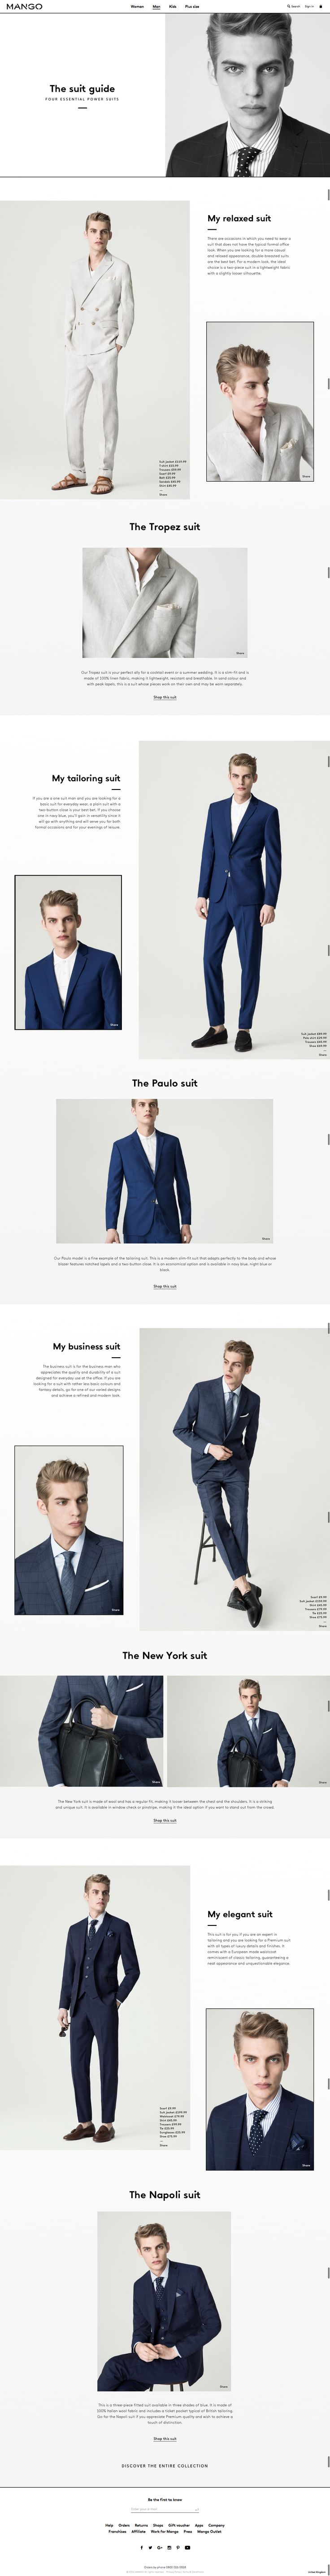 mango suit guide feature page